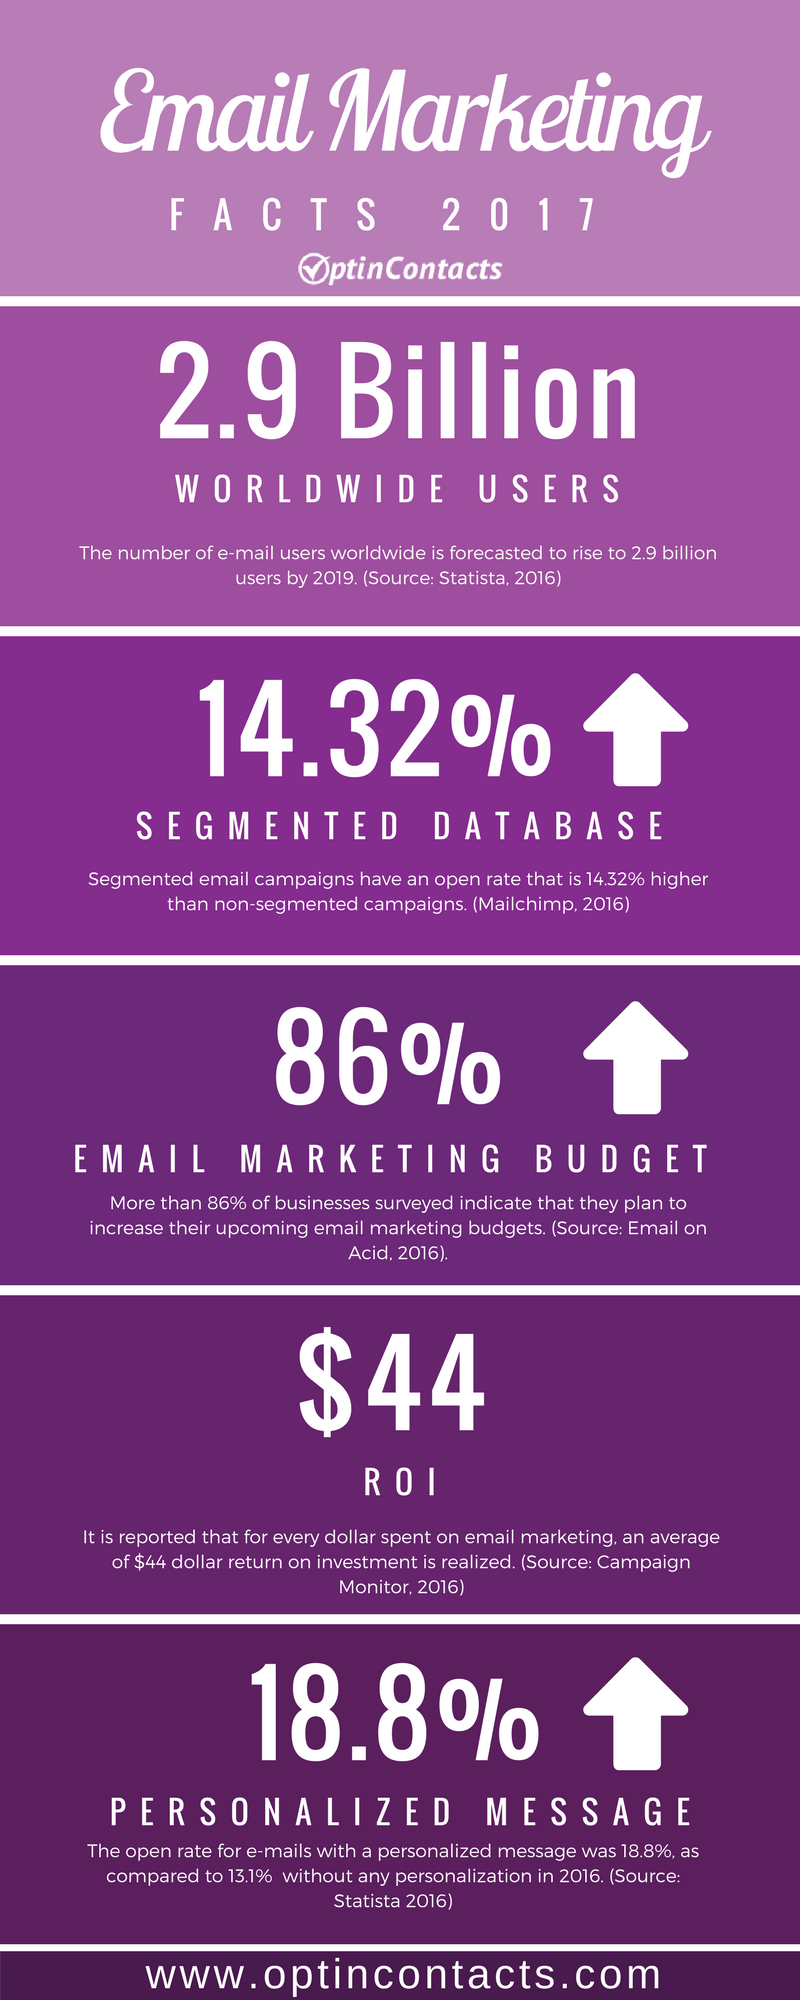 Email Marketing Facts 2017